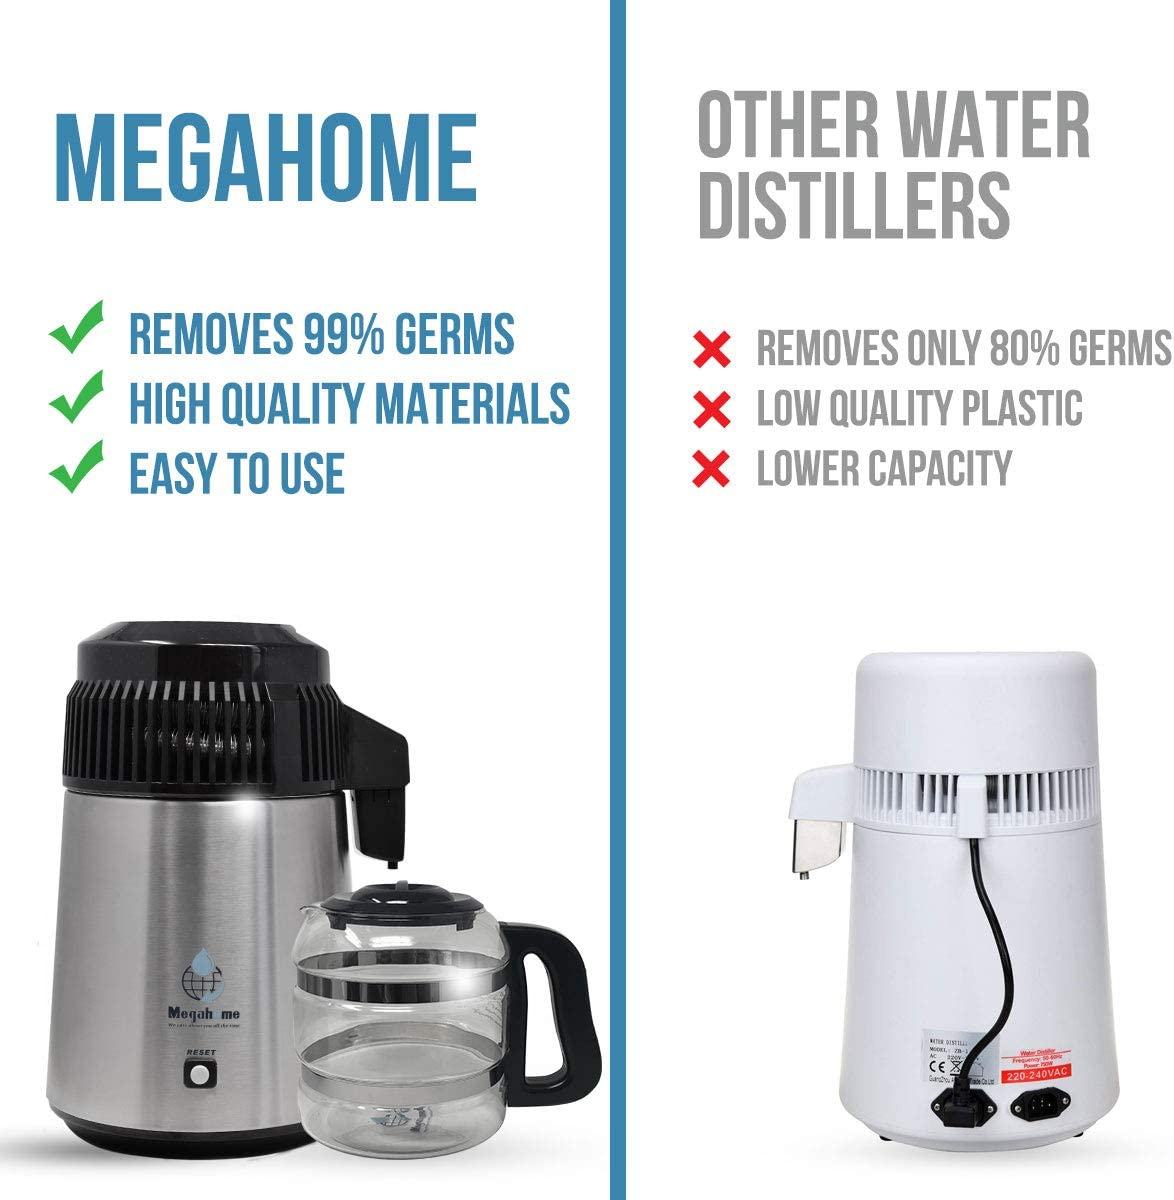 Megahome Stainless Water Distiller With a Porcelain Spout and Glass Carafe